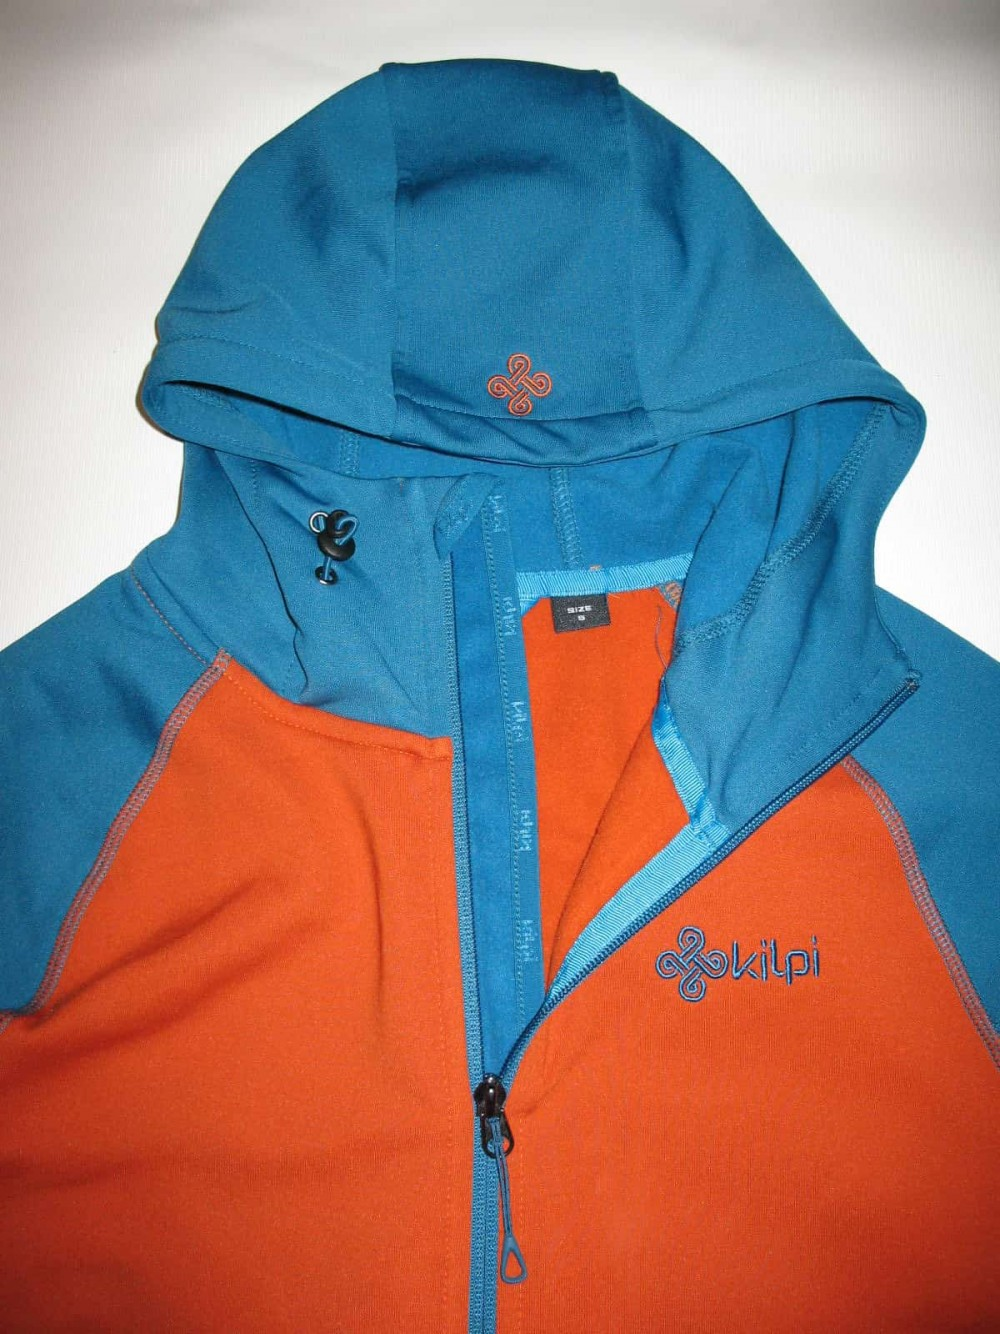 Кофта KILPI yoho-m fleece hoodies jacket (размер S) - 6